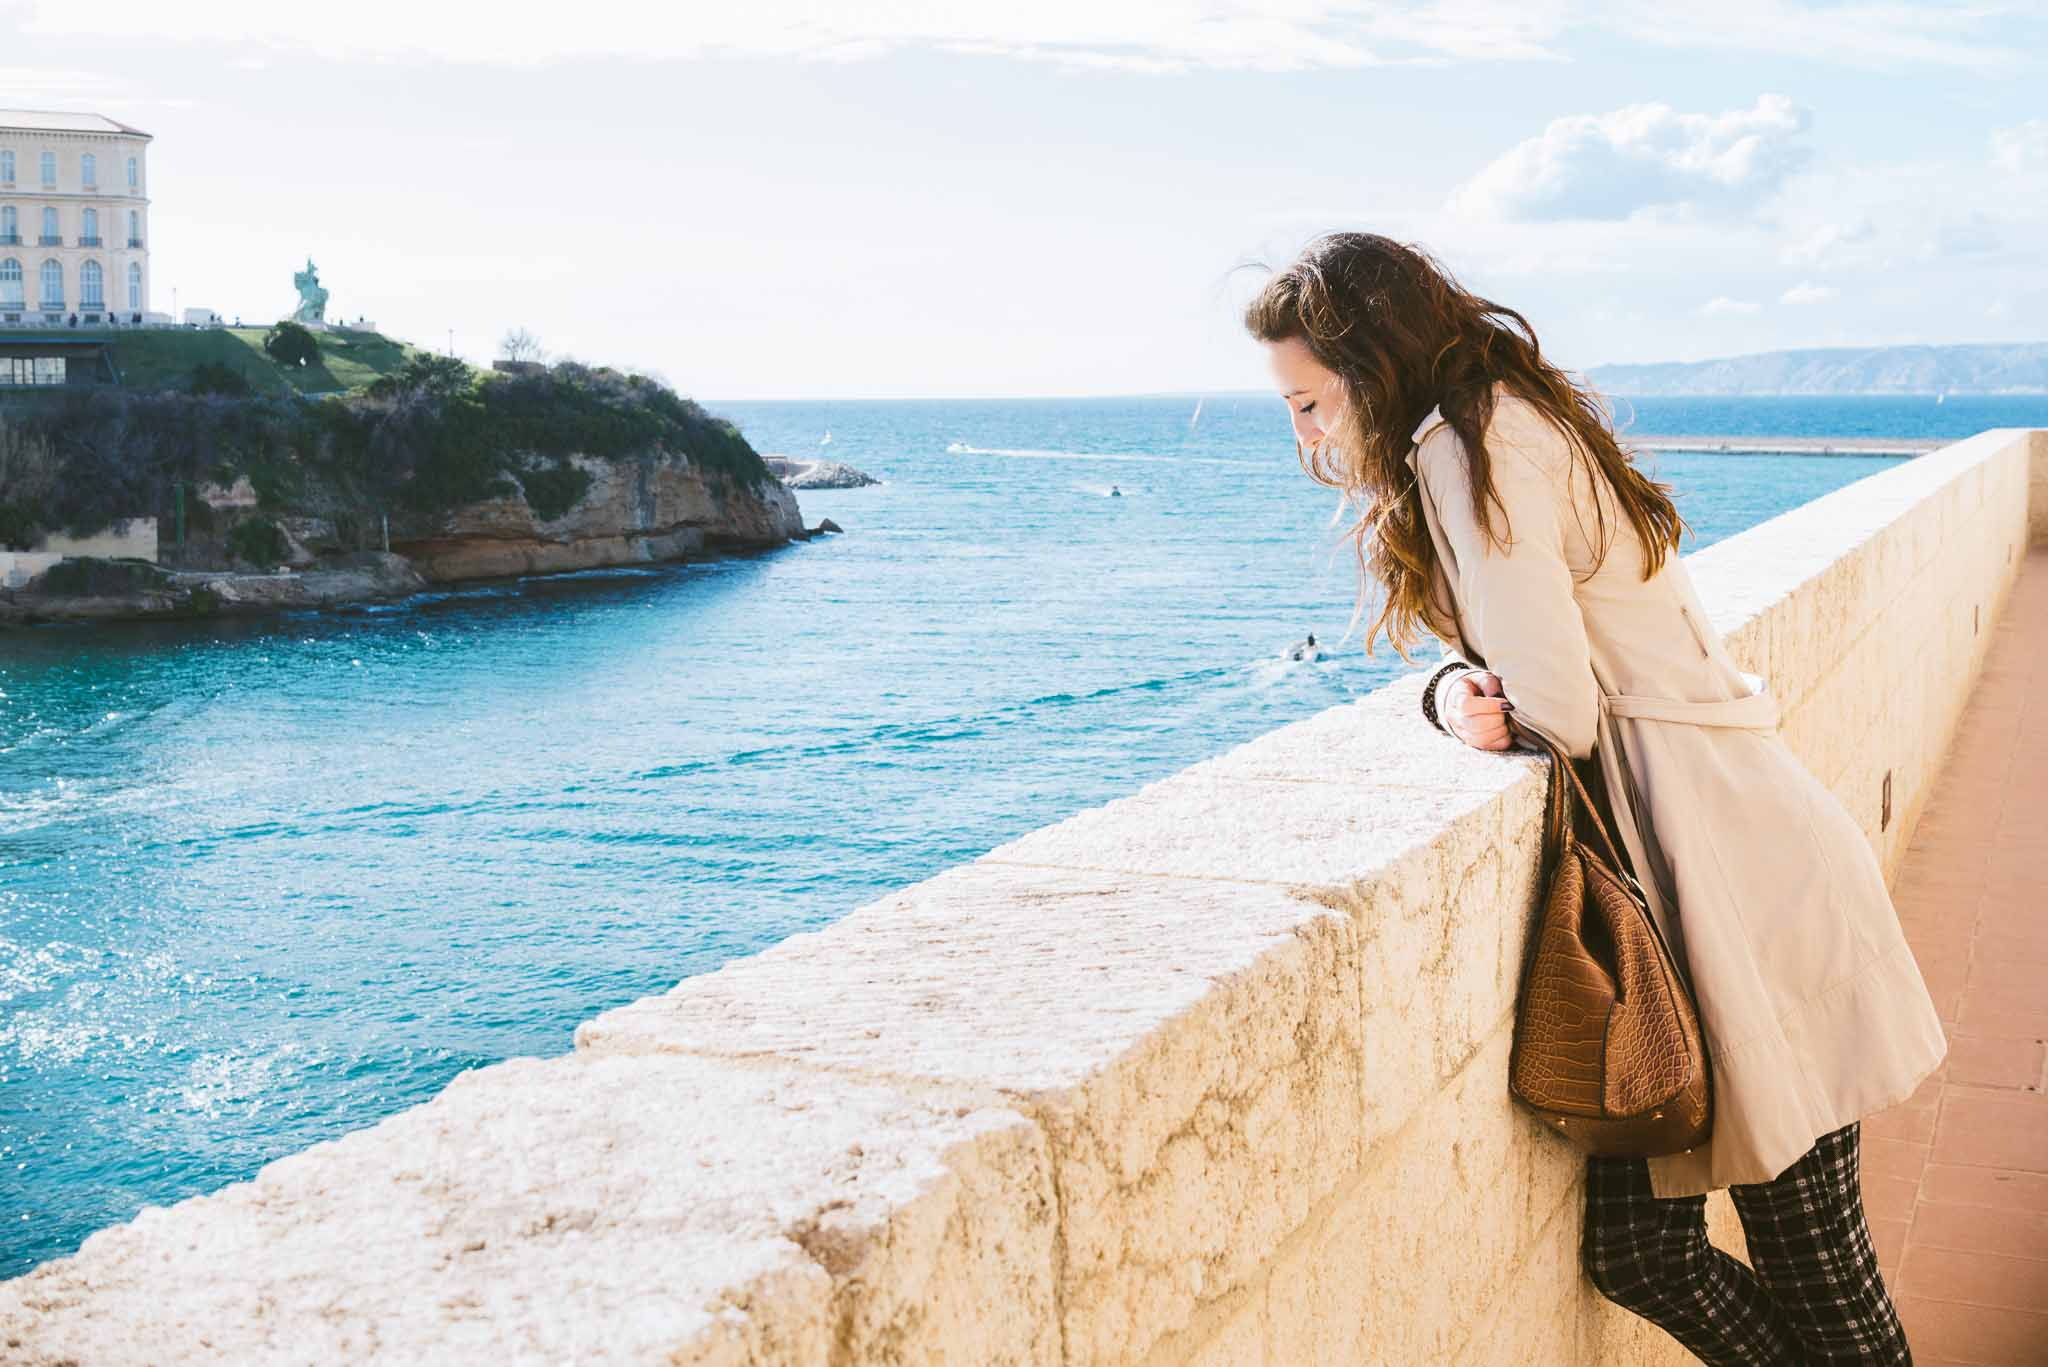 Fashion photography image of a brunette woman in a trench coat, black and grey plaid pants and brown purse looking out at the Mediterranean sea over a stone wall in Marselle, France.